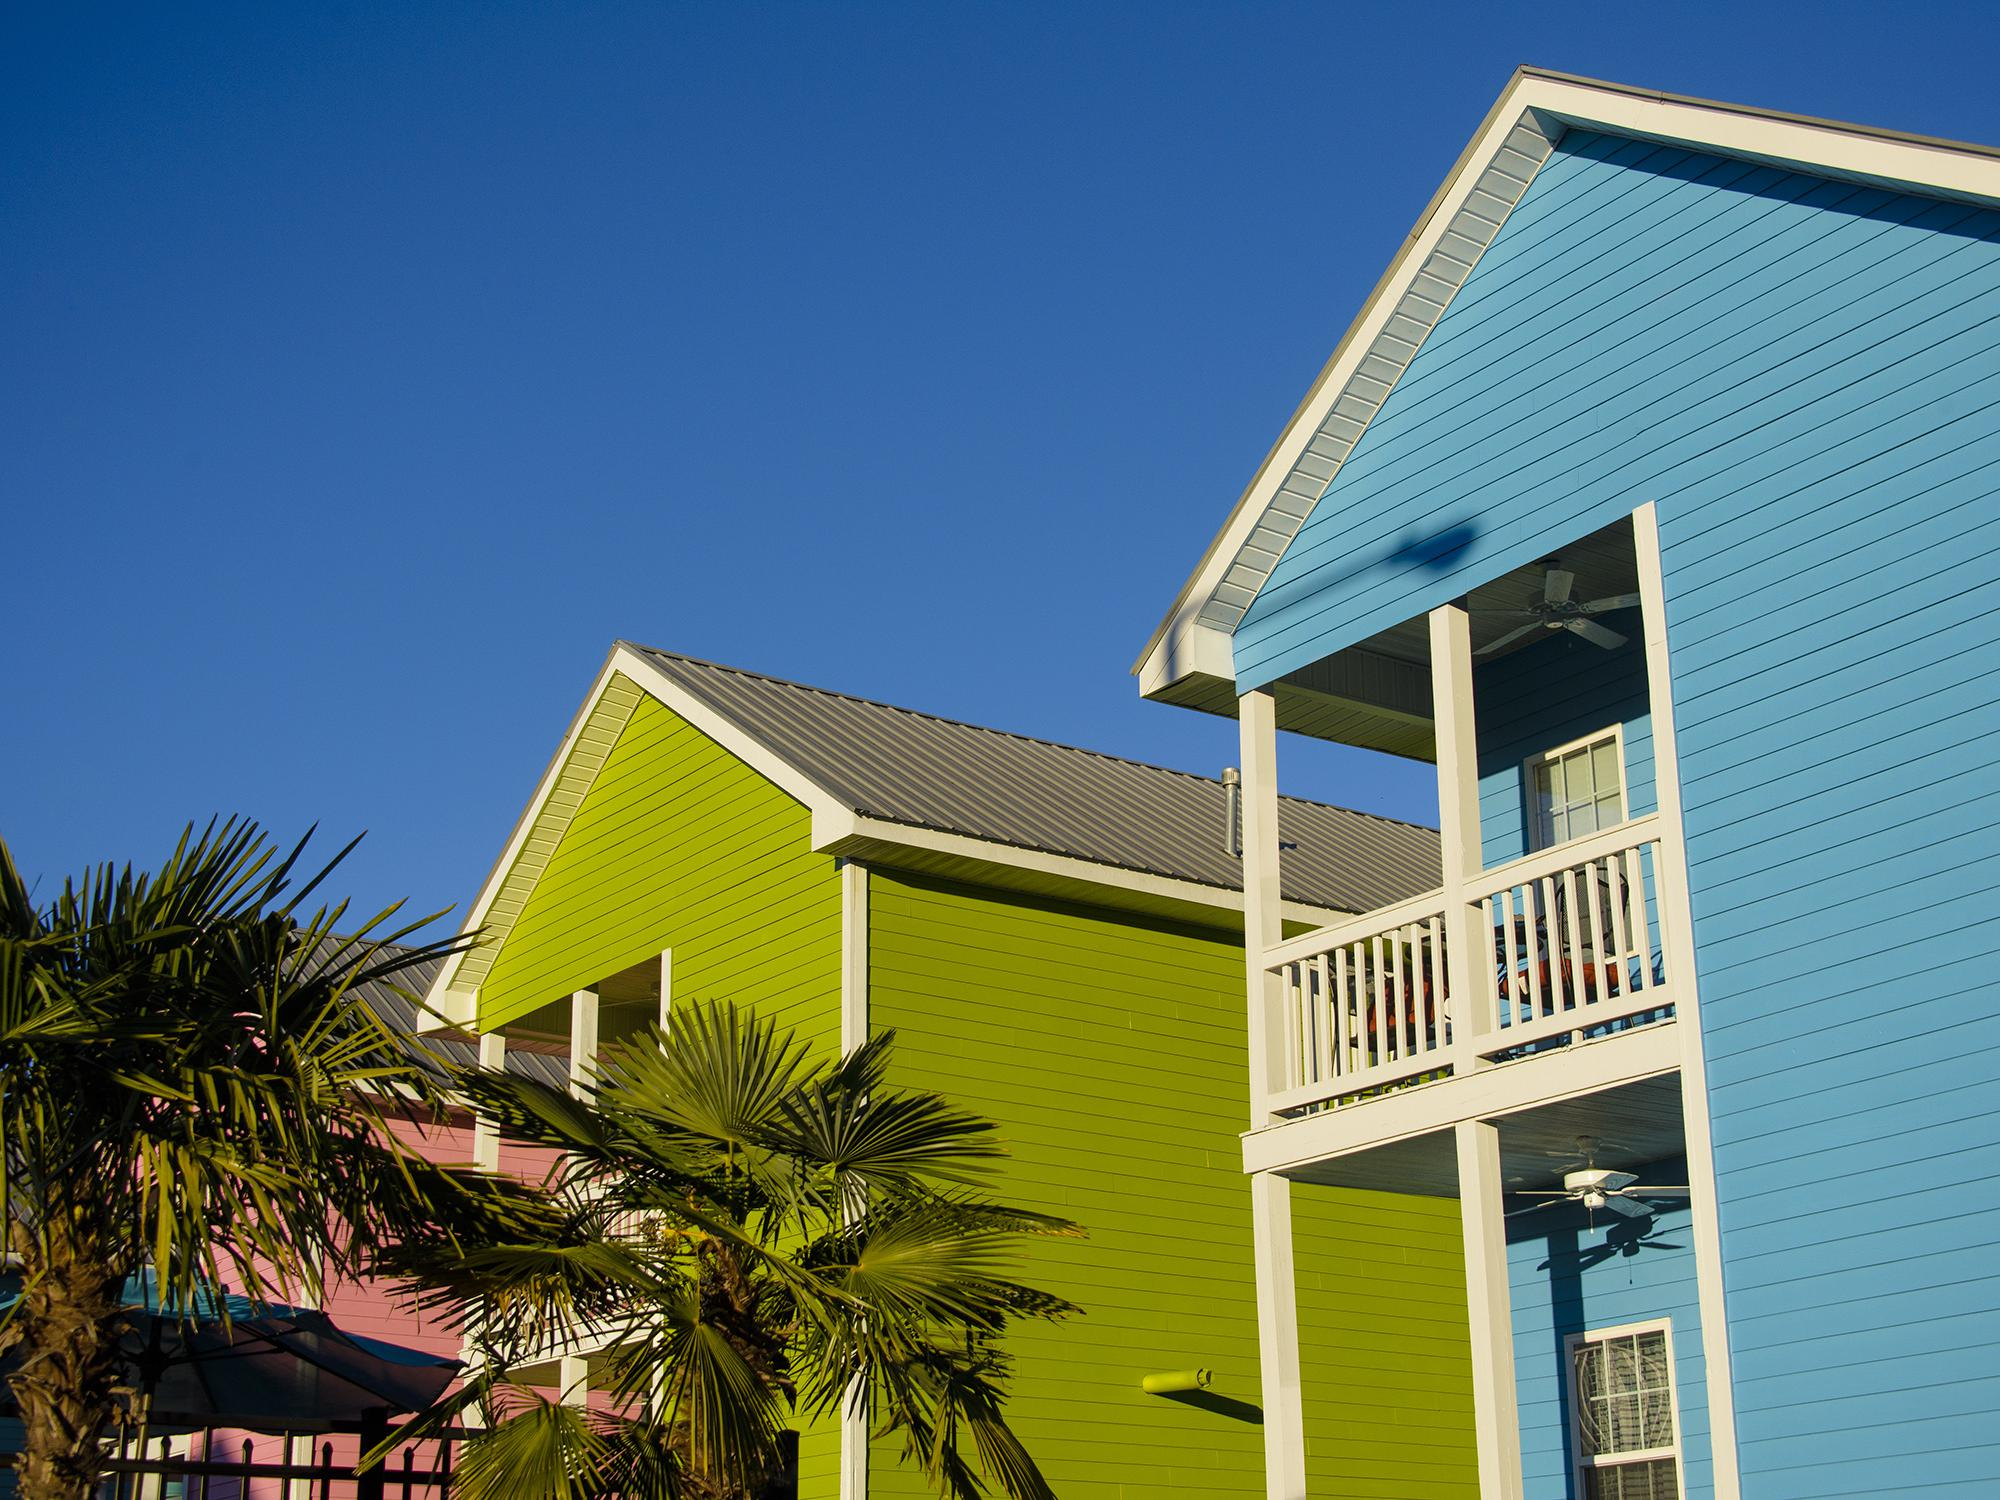 Palm trees adorn the landscape in front of blue, green and pink cottages.